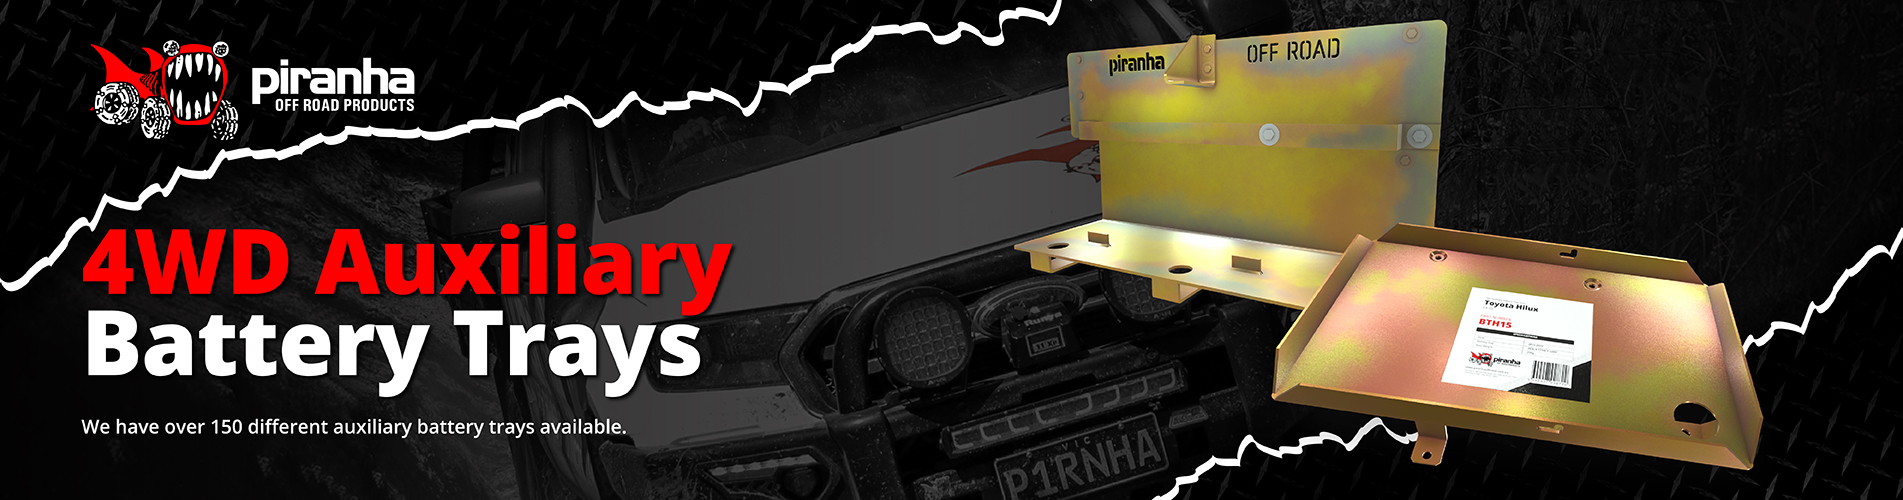 Piranha Off Road Battery Trays